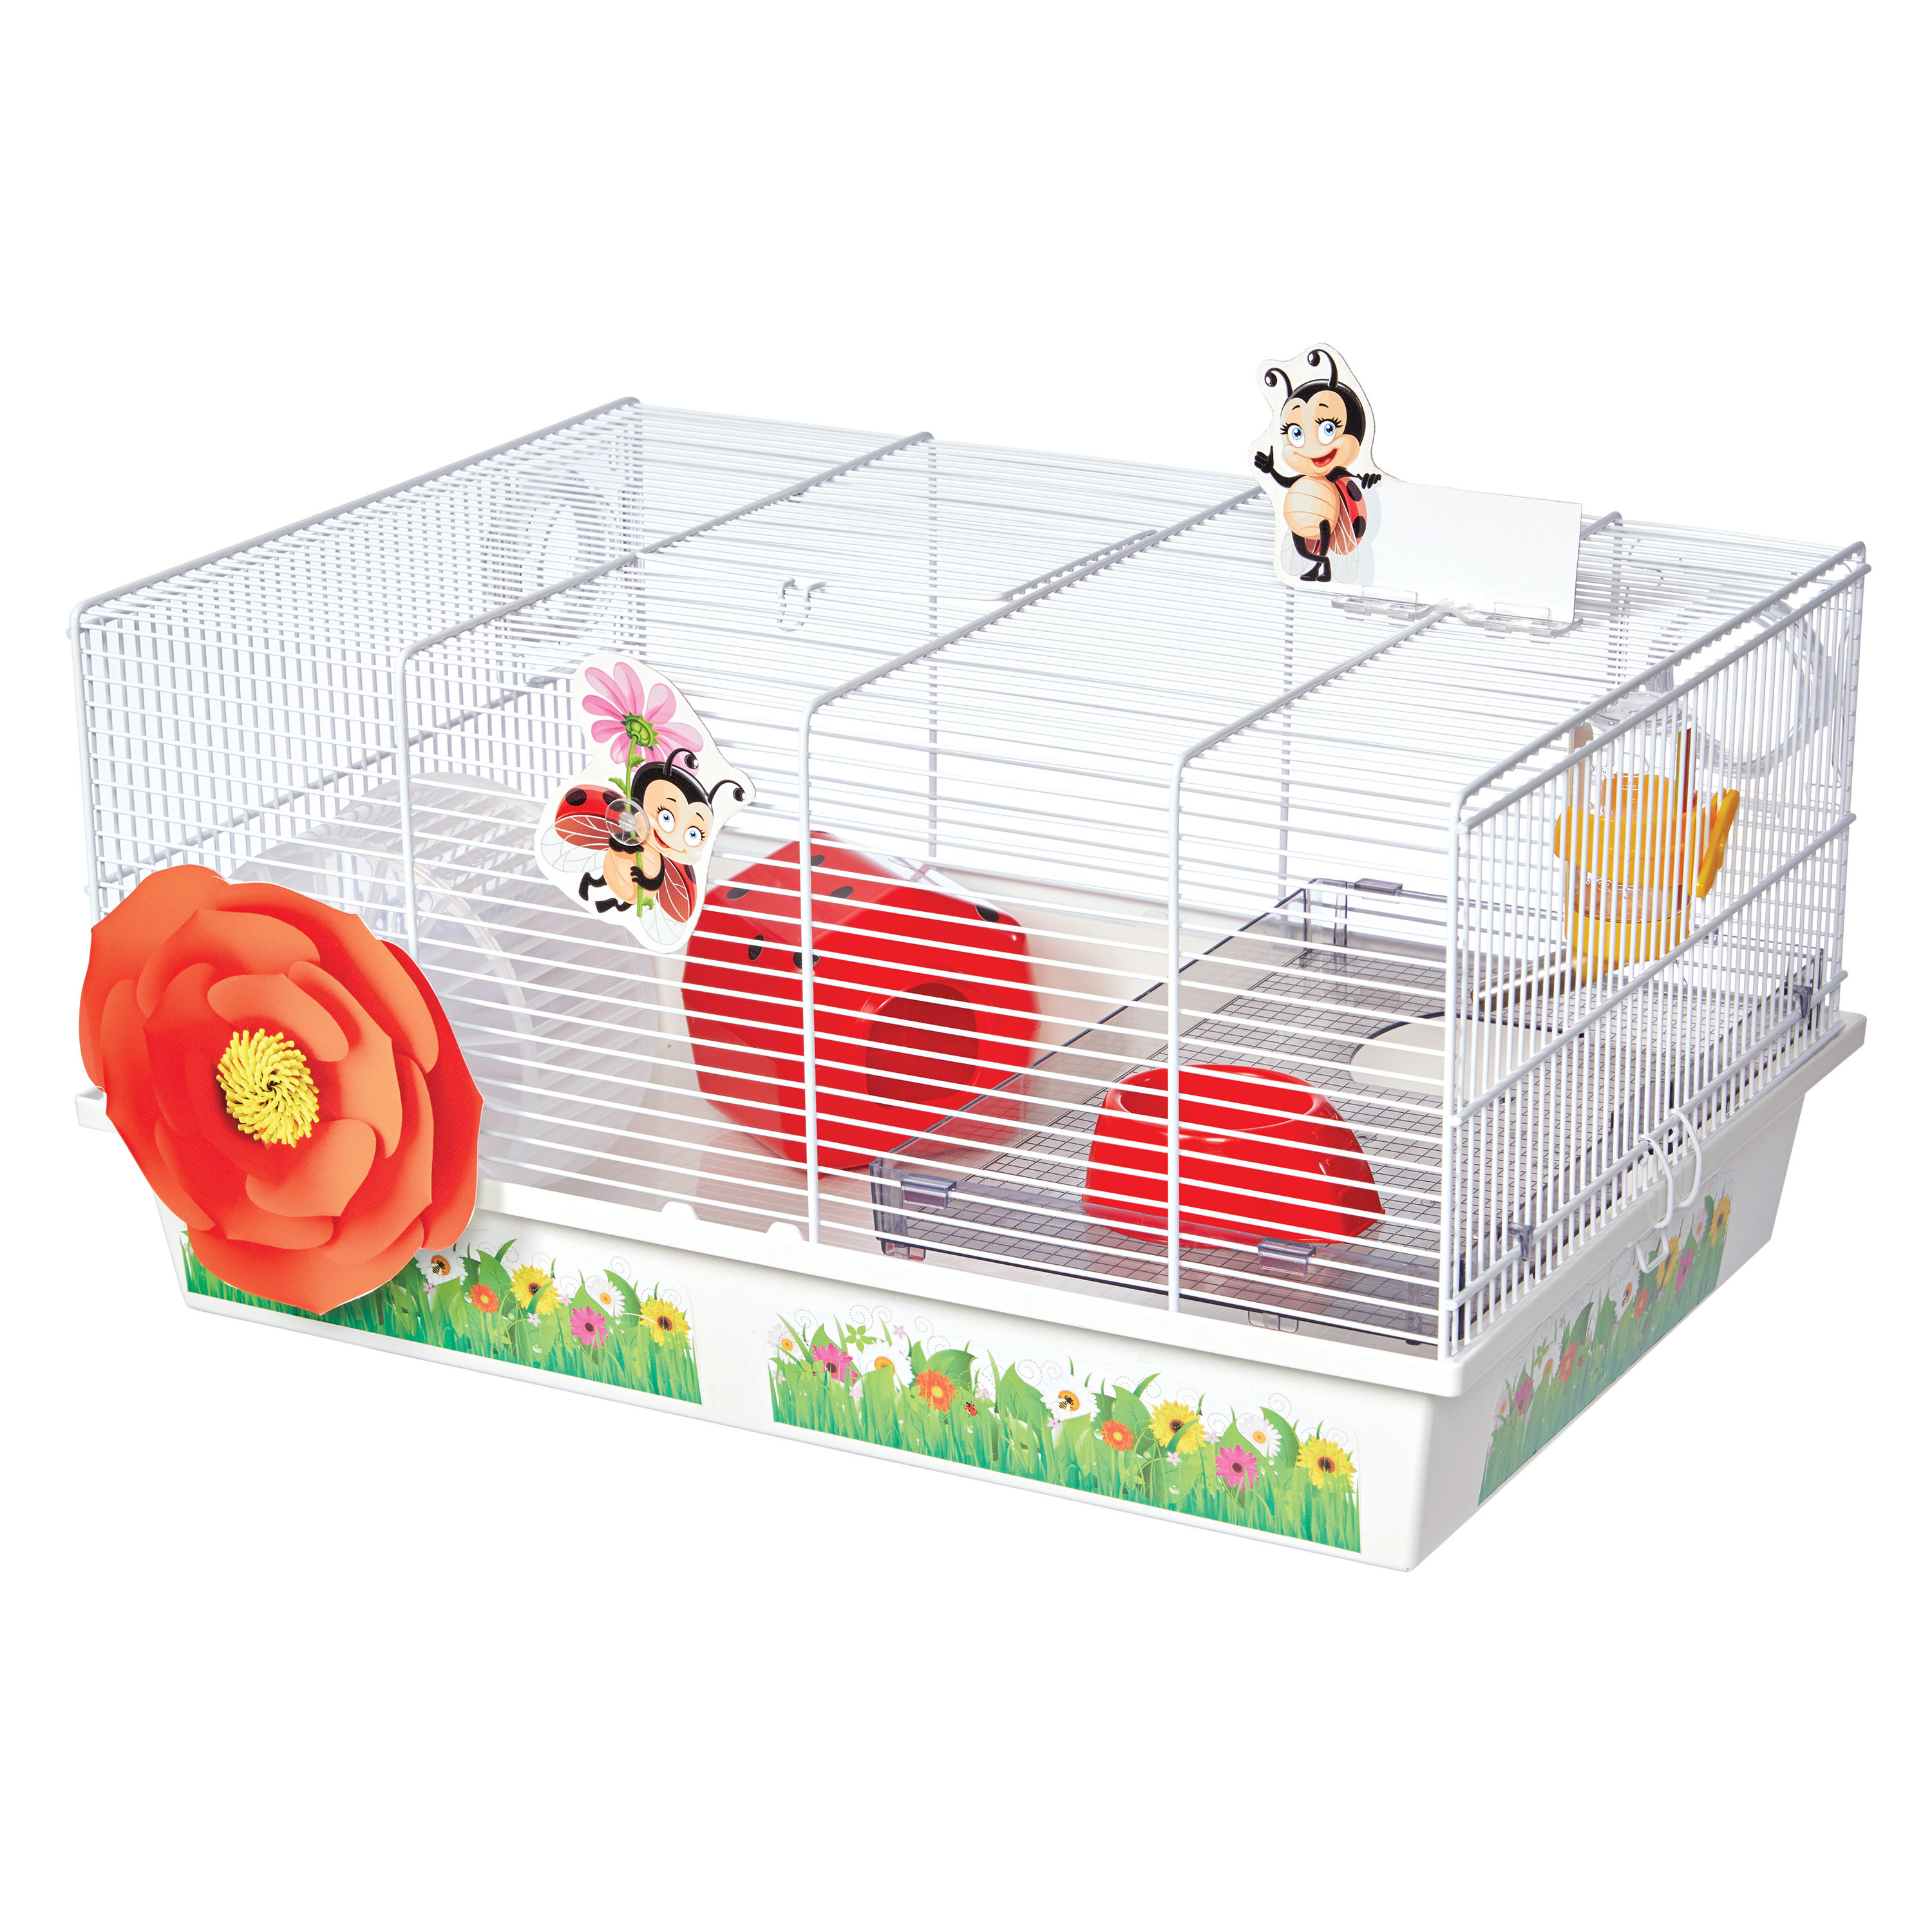 Lady Bug Hamster Cage